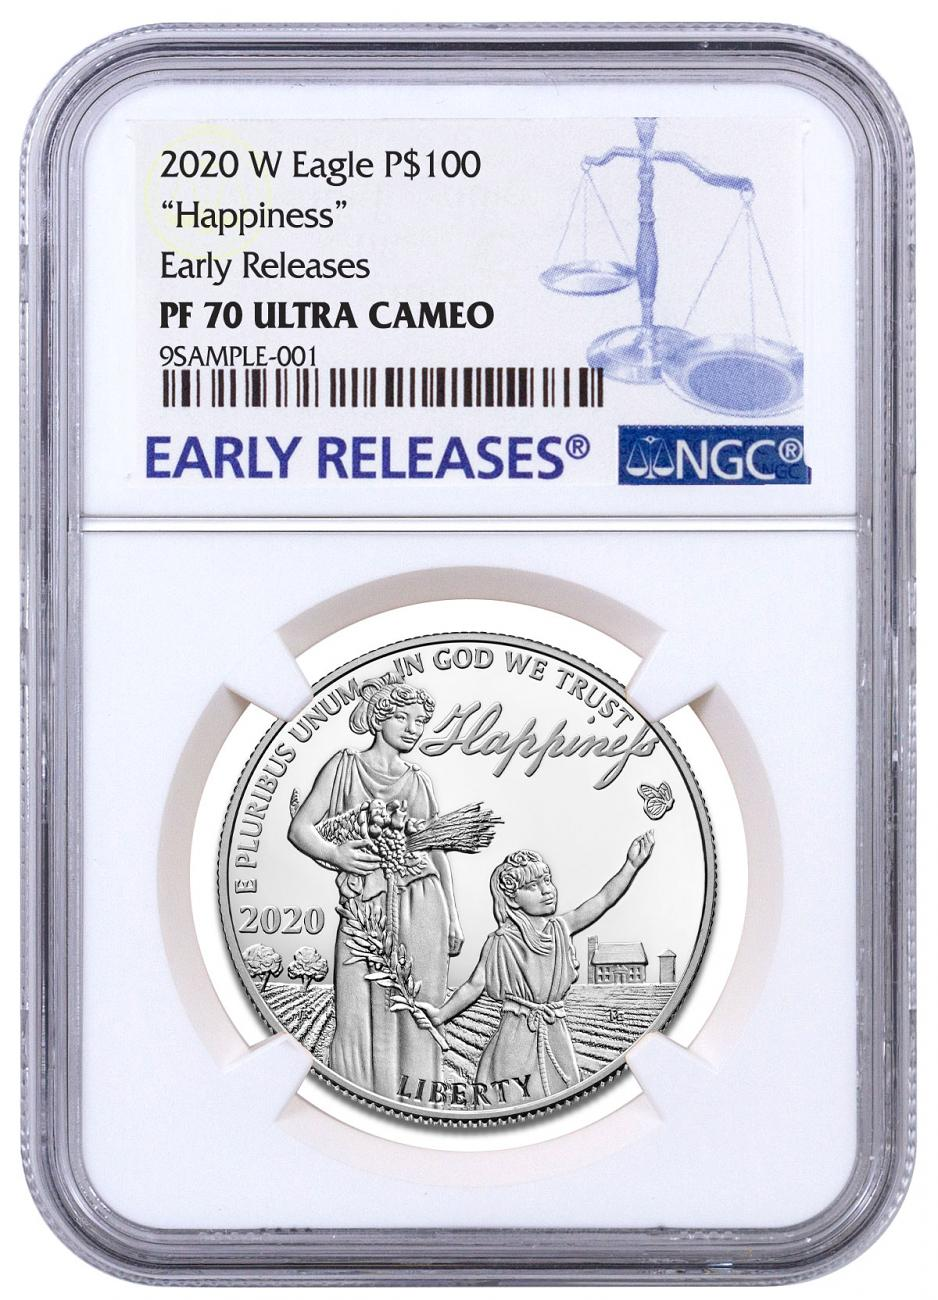 2020-W 1 oz Platinum American Eagle Pursuit of Happiness Proof $100 Coin NGC PF70 UC ER